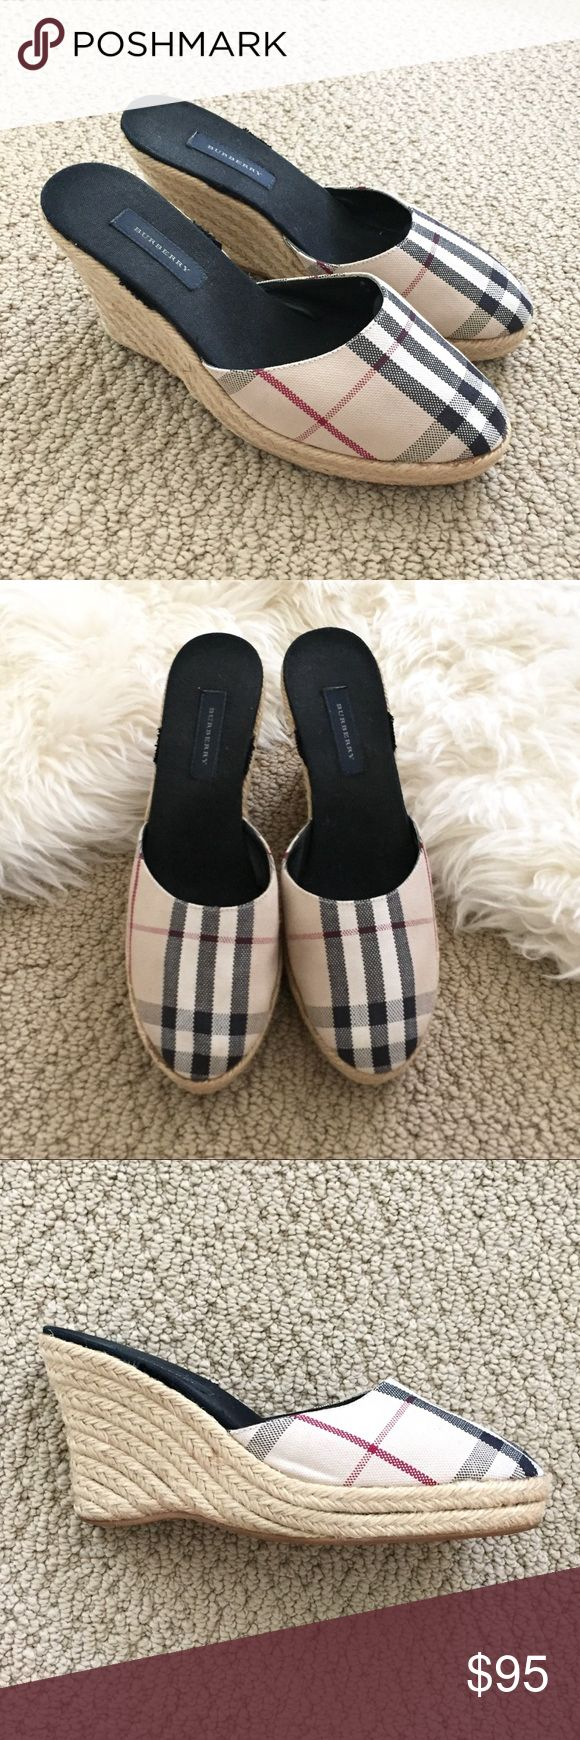 """🖤 BURBERRY Espadrille Wedge Sandals Size 37 These espadrille wedges are perfect for summer and resort fun! These used to have black ribbons that tie around your ankle but I thought they looked tacky and cut them off (see pic). The sides aren't noticeable at all when worn and look like they were made this way. These are so comfy and pair perfectly with a summer sundress or cute shorts.   EXCELLENT like new condition 3.5"""" high with 1"""" platform Size 37  100% authentic Burberry Shoes…"""